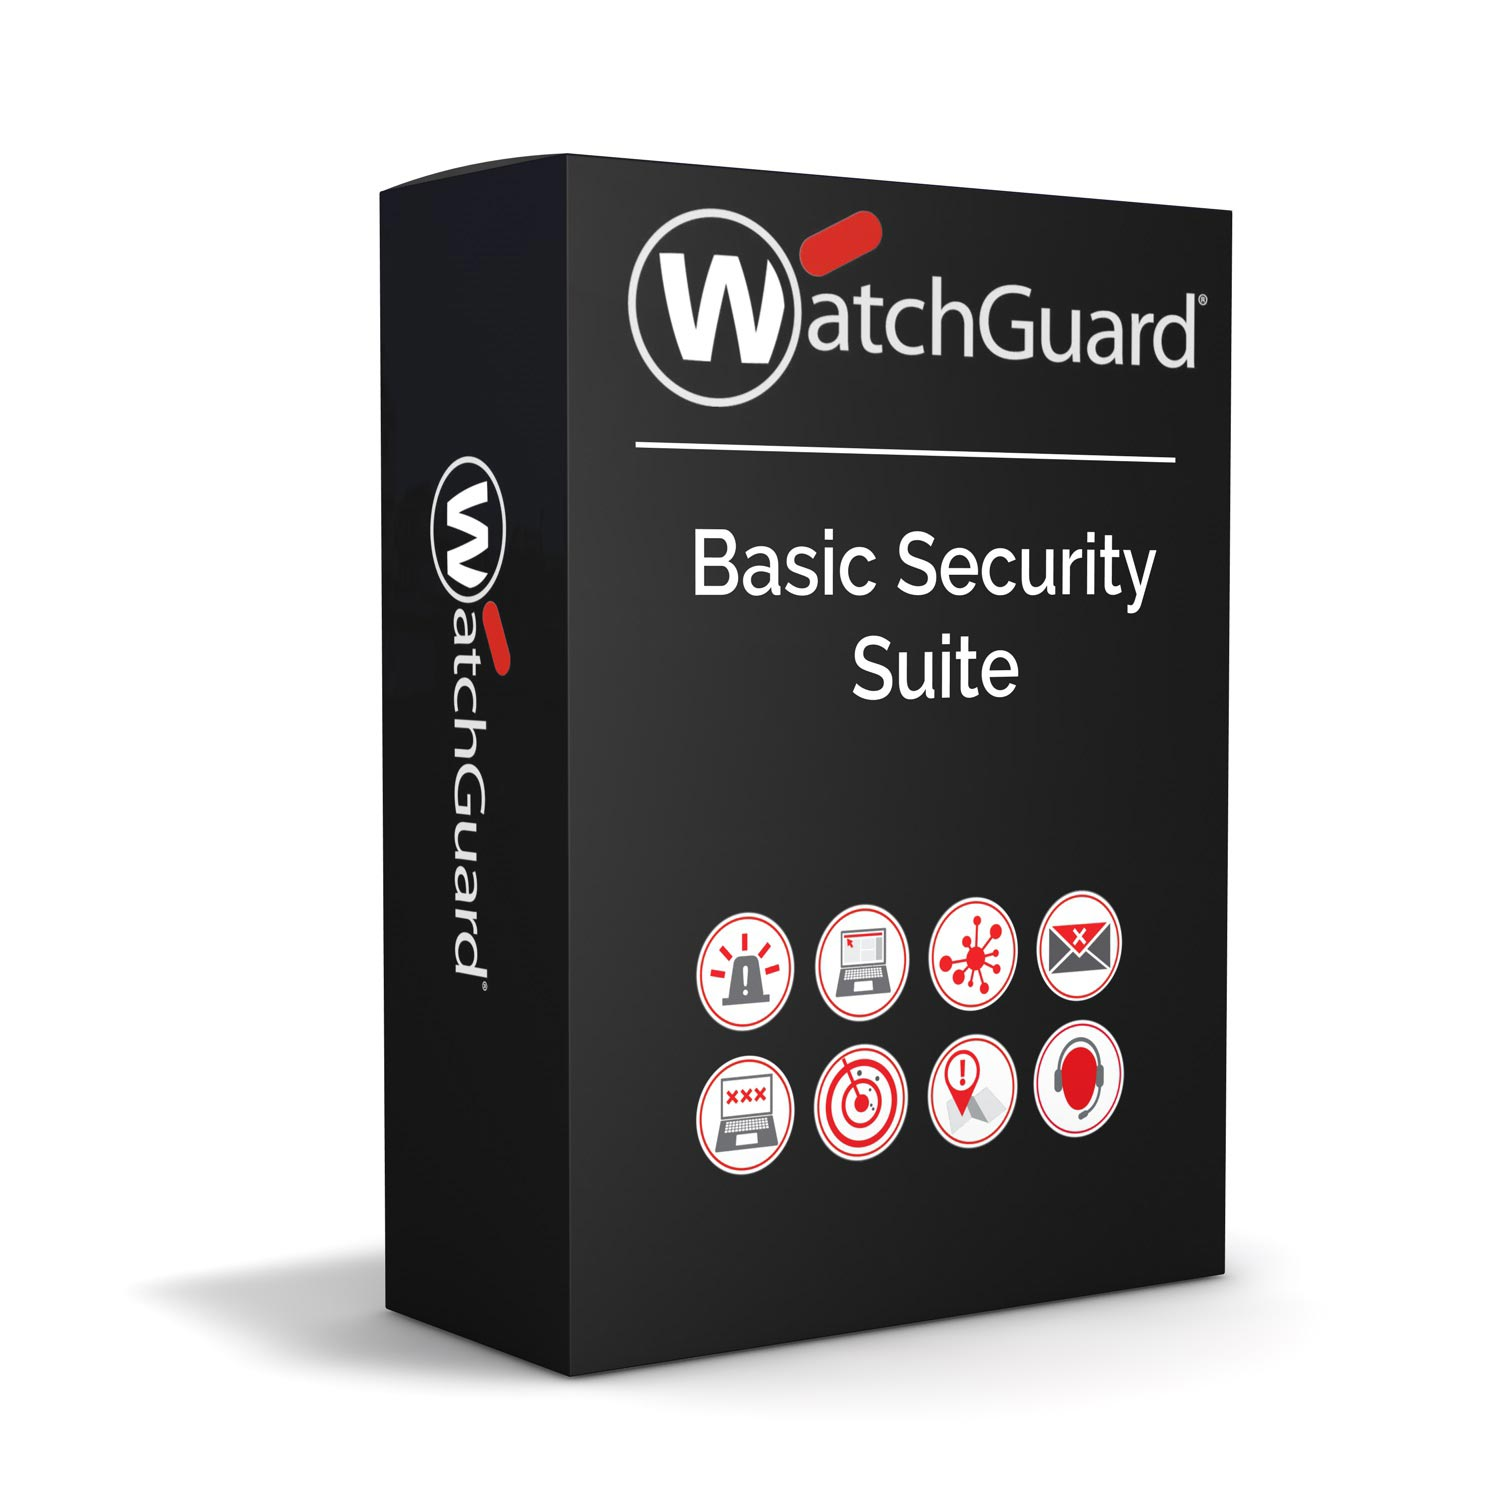 WatchGuard Basic Security Suite Renewal/Upgrade 1-yr for Firebox T70